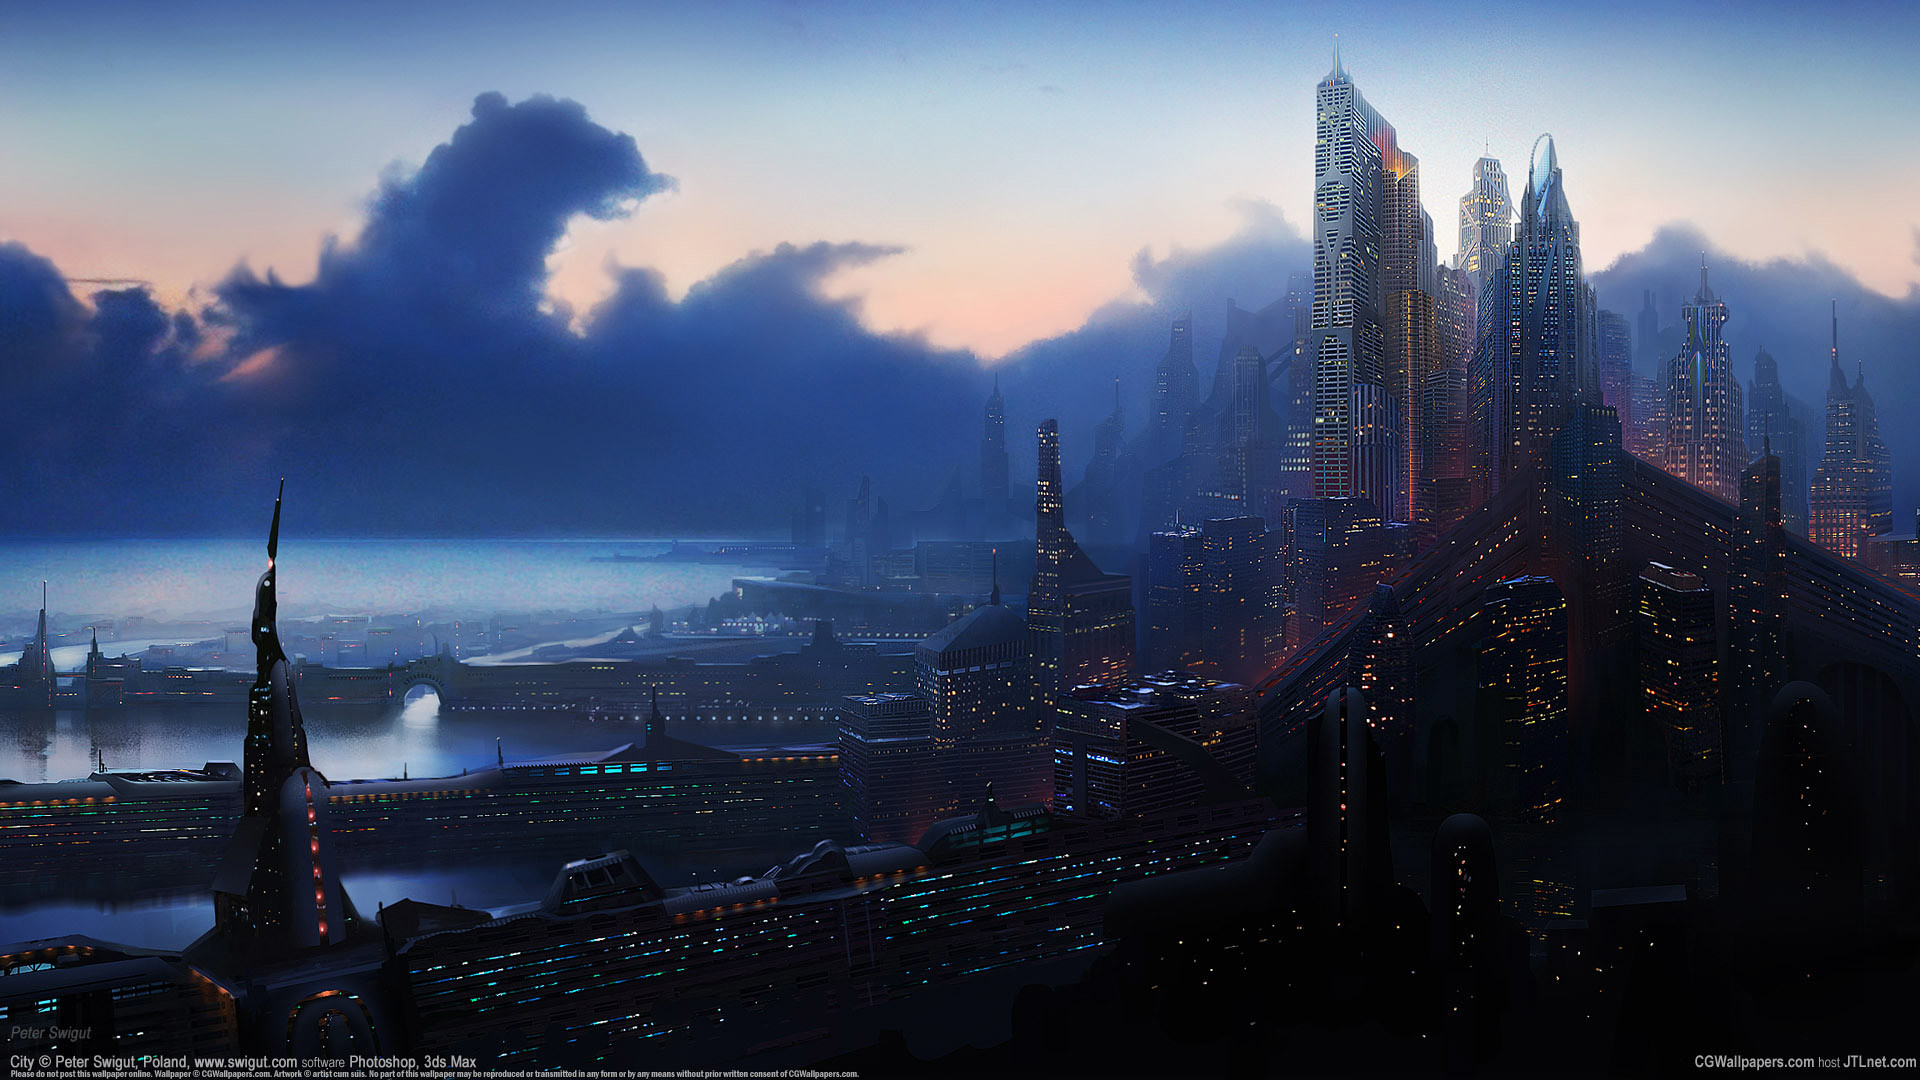 Hd Sci Fi Wallpapers 1080p 72 Images